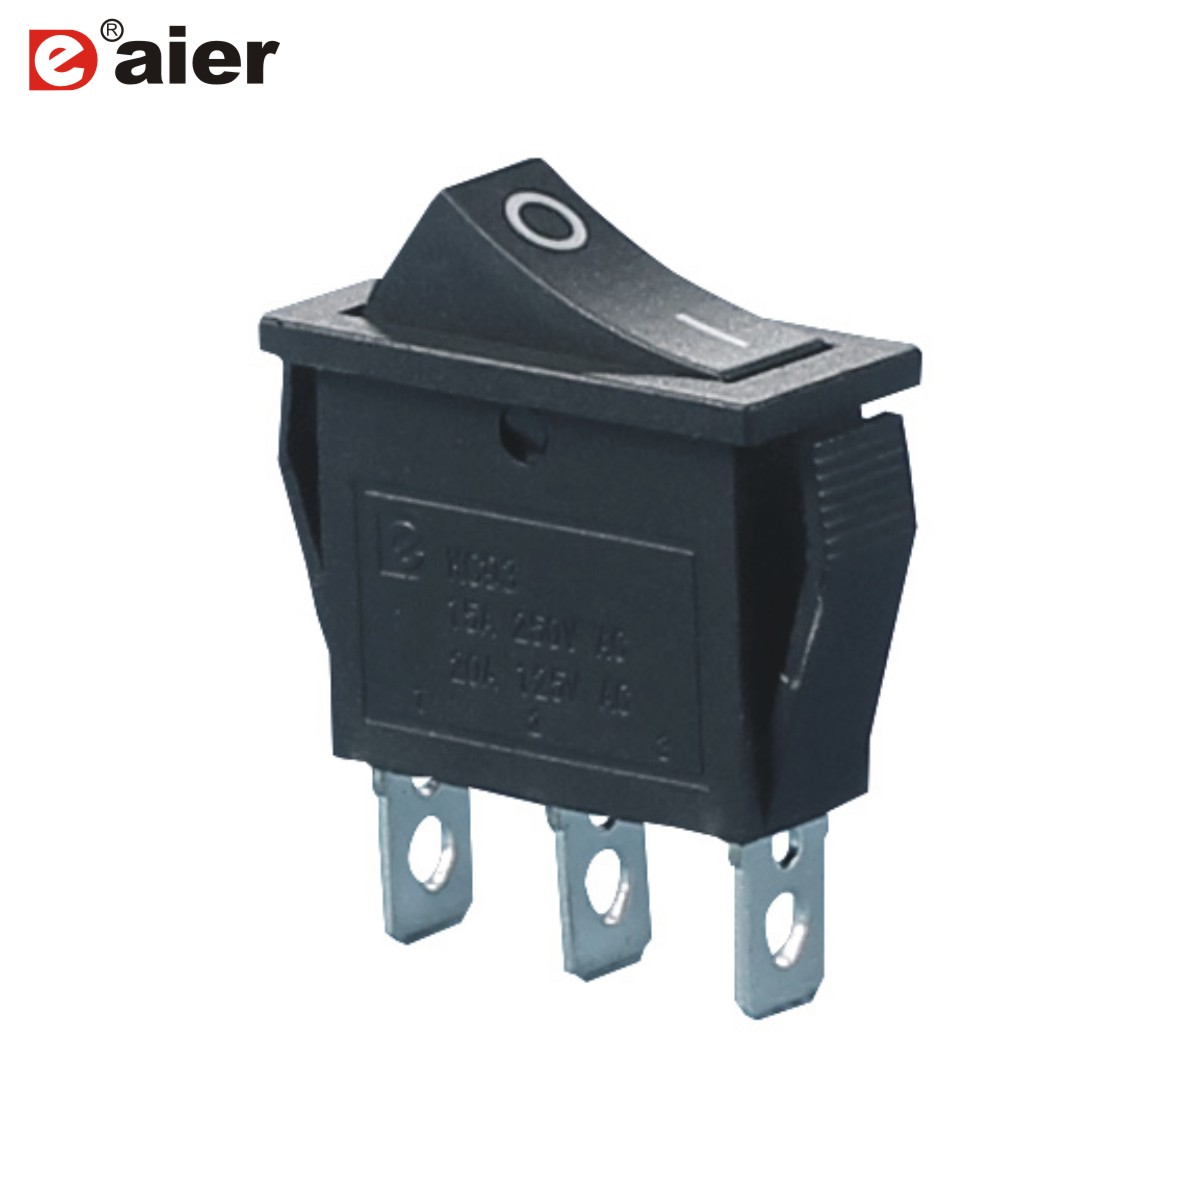 small resolution of 5pcs on on 3 pins 2 position rocker switch t105 250v 15 amp spdt 10 28mm 20a 125vac switches single pole without light